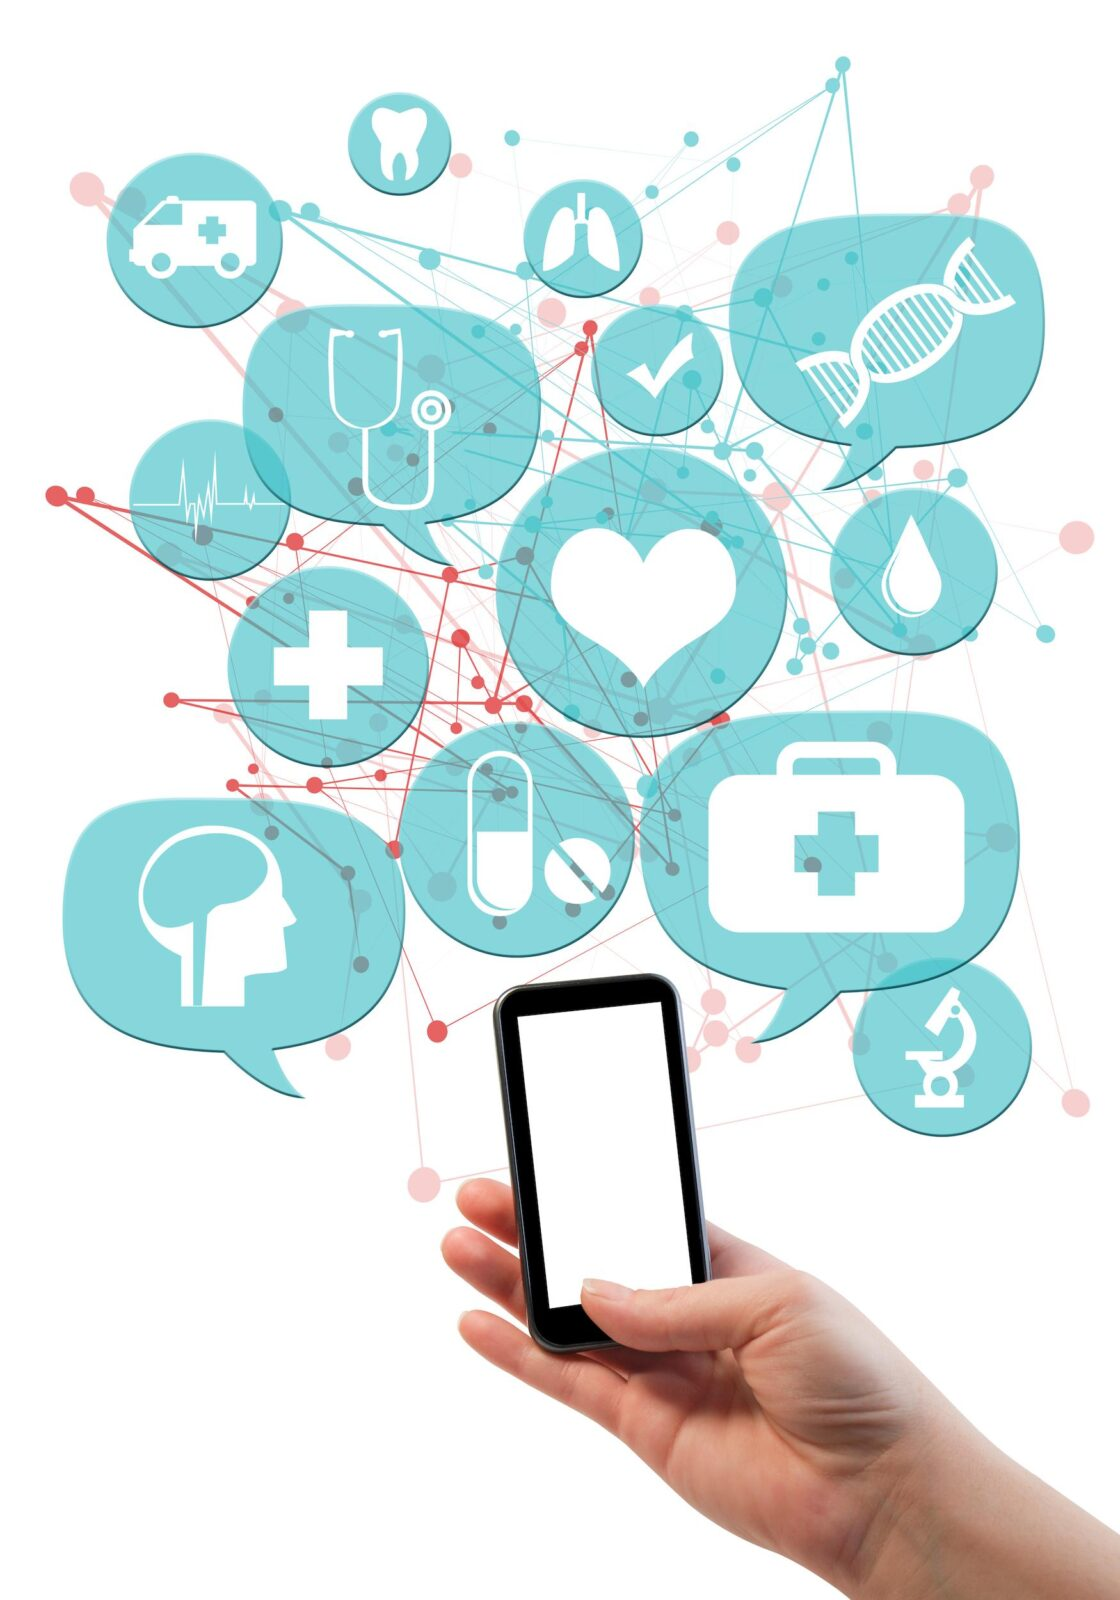 mHealth apps